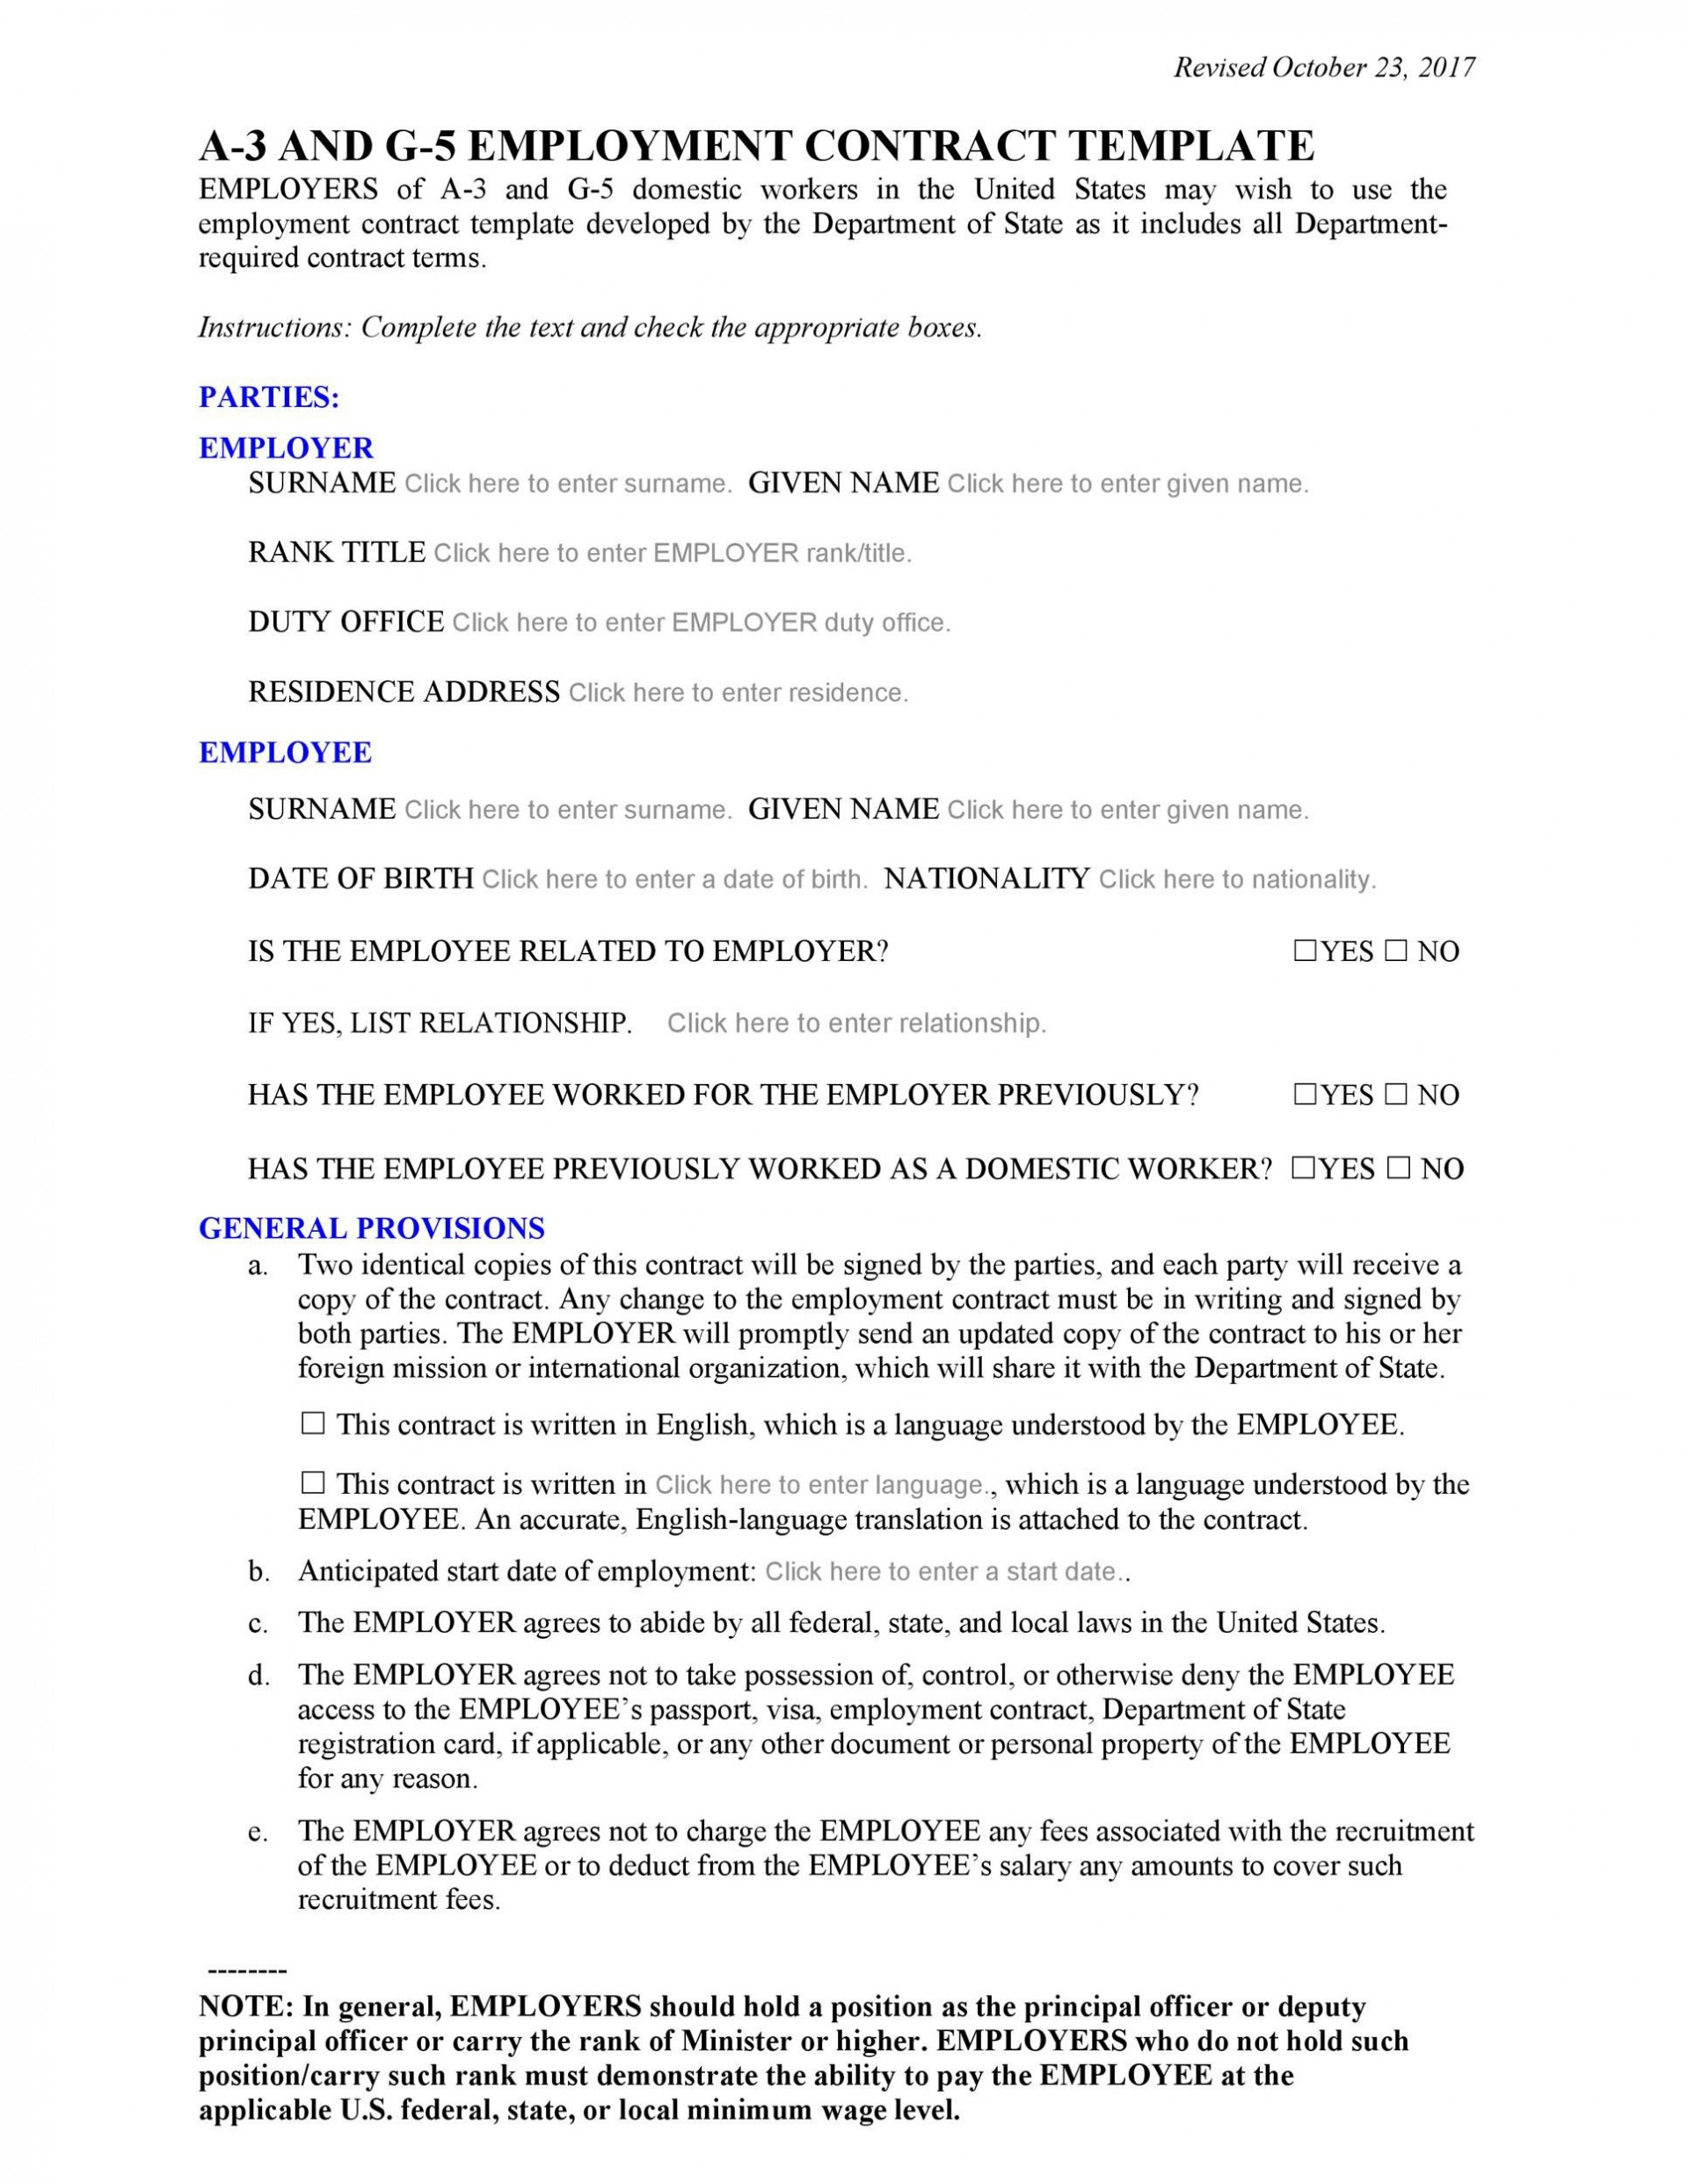 002 Awesome Free Casual Employment Contract Template Australia Concept 1920